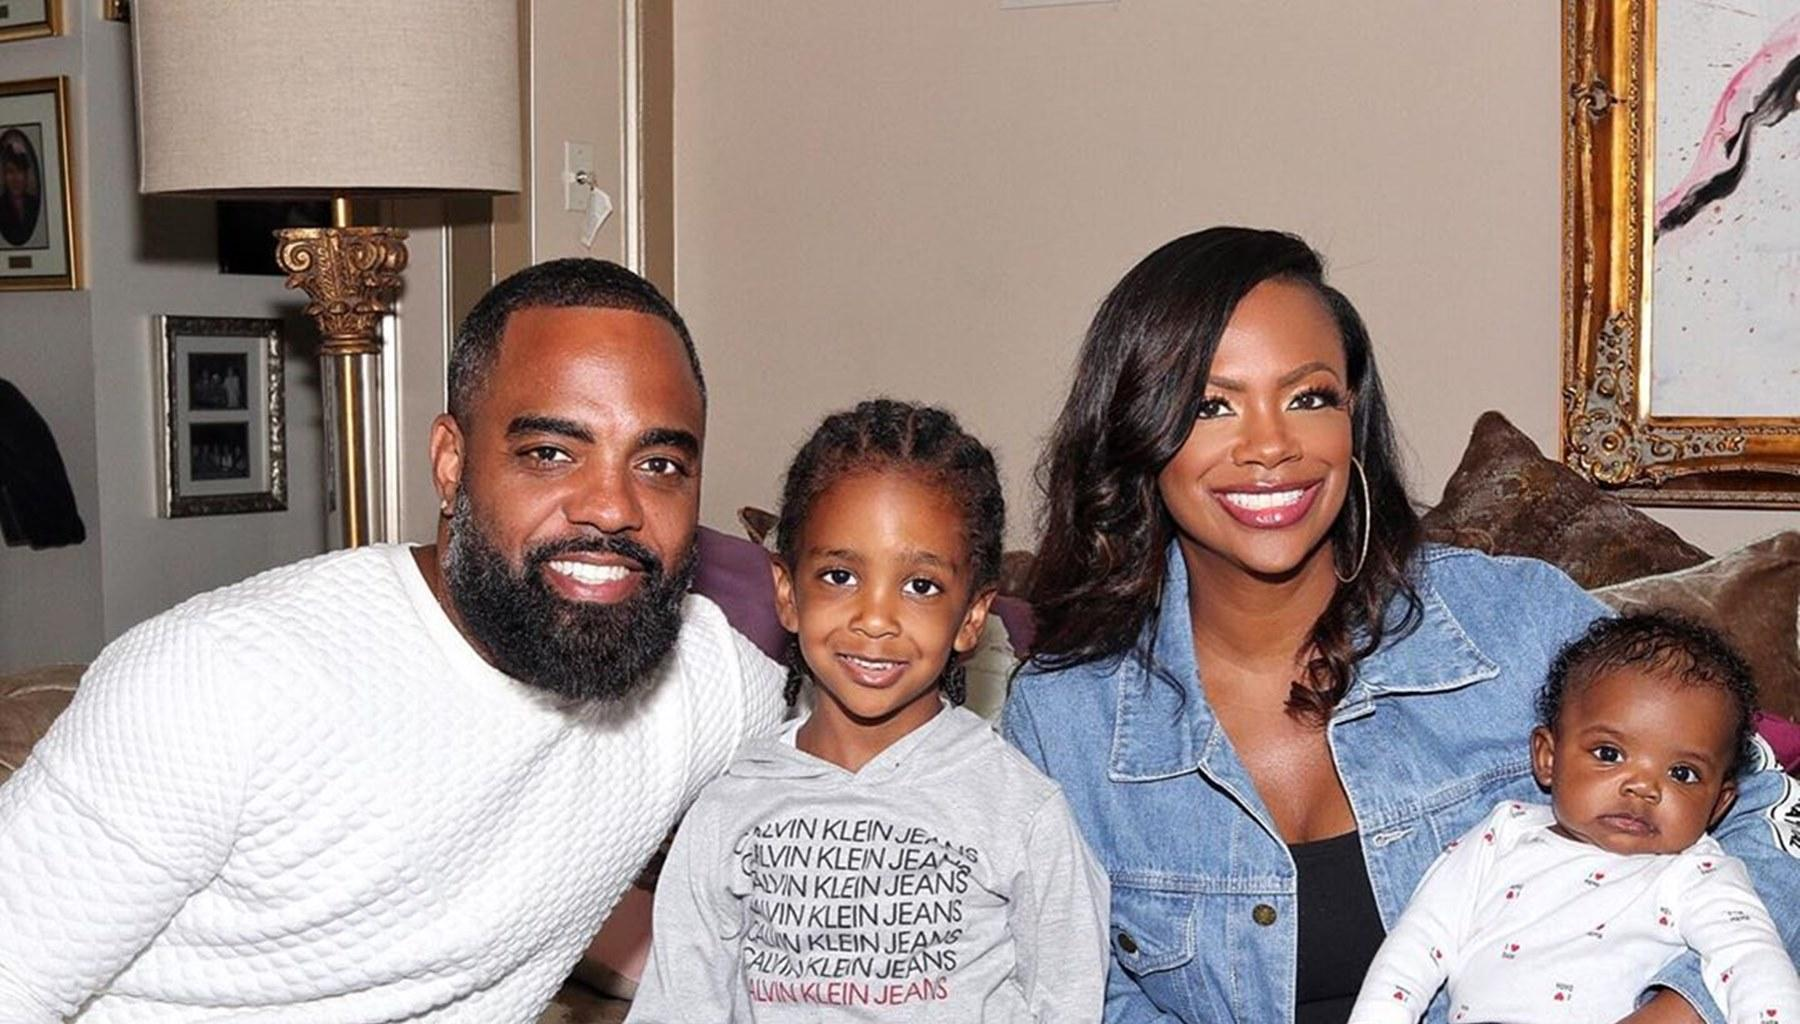 Kandi Burruss' Photo Featuring Todd Tucker, Ace And Blaze Makes Fans' Day